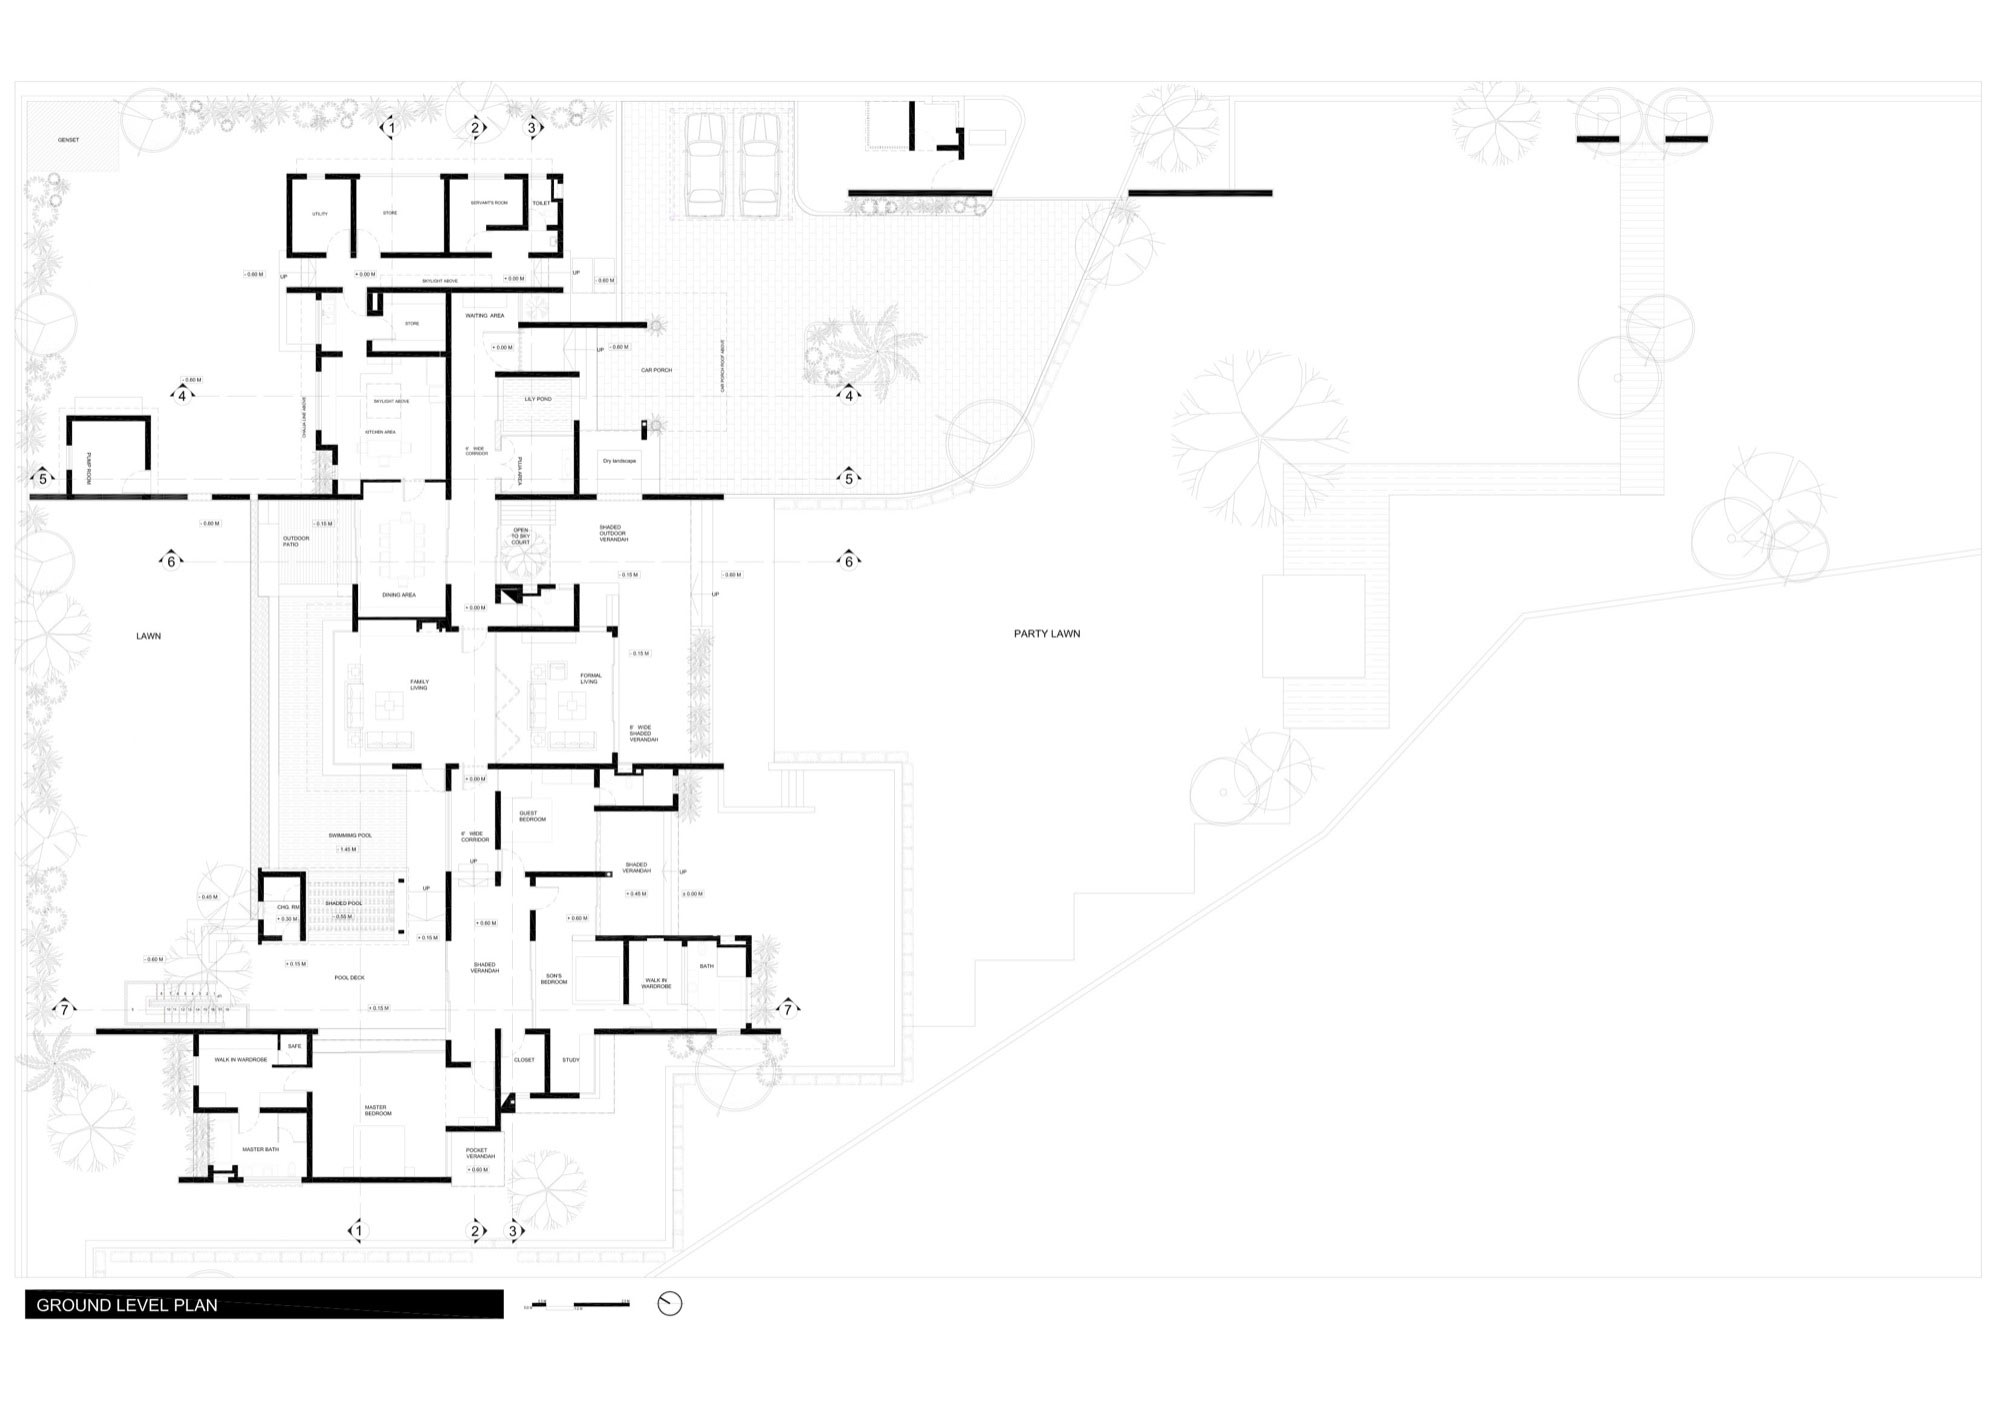 Bungalow-Baroda-India-Ground-Level-Floor-Plan Unisex Baby Shower Invites